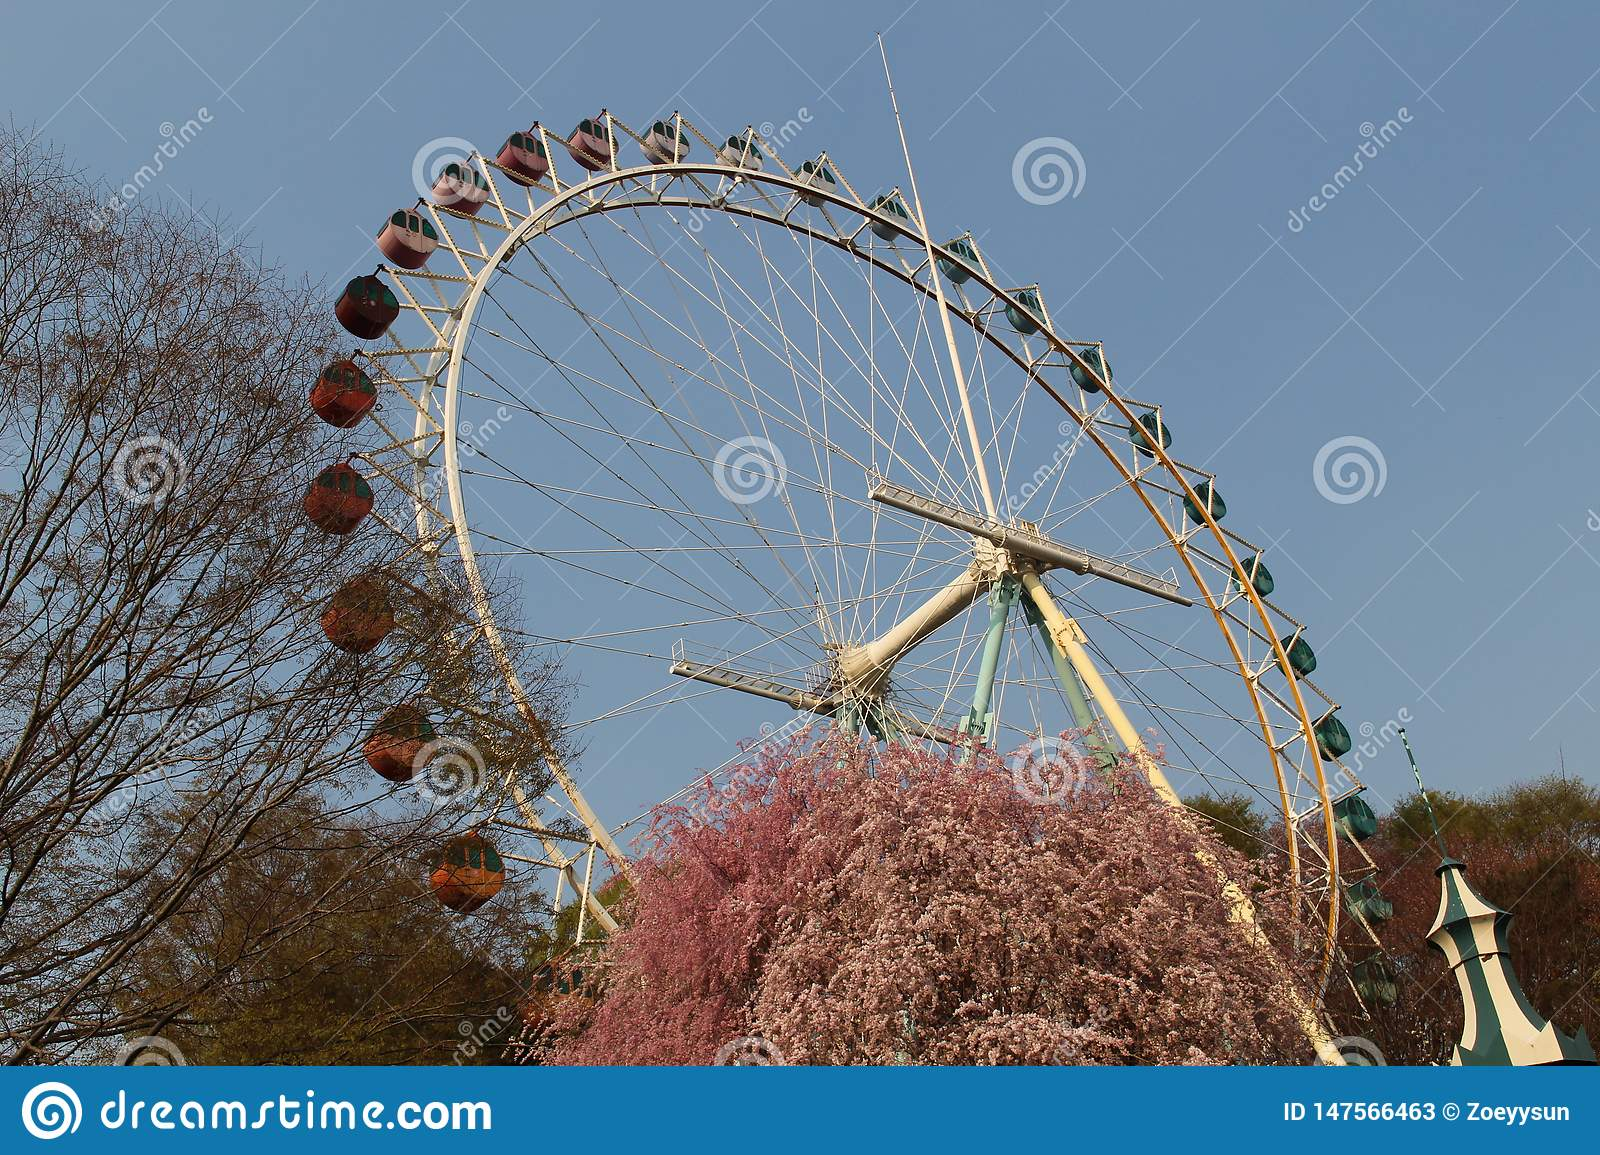 An old ferris wheel in Everland park